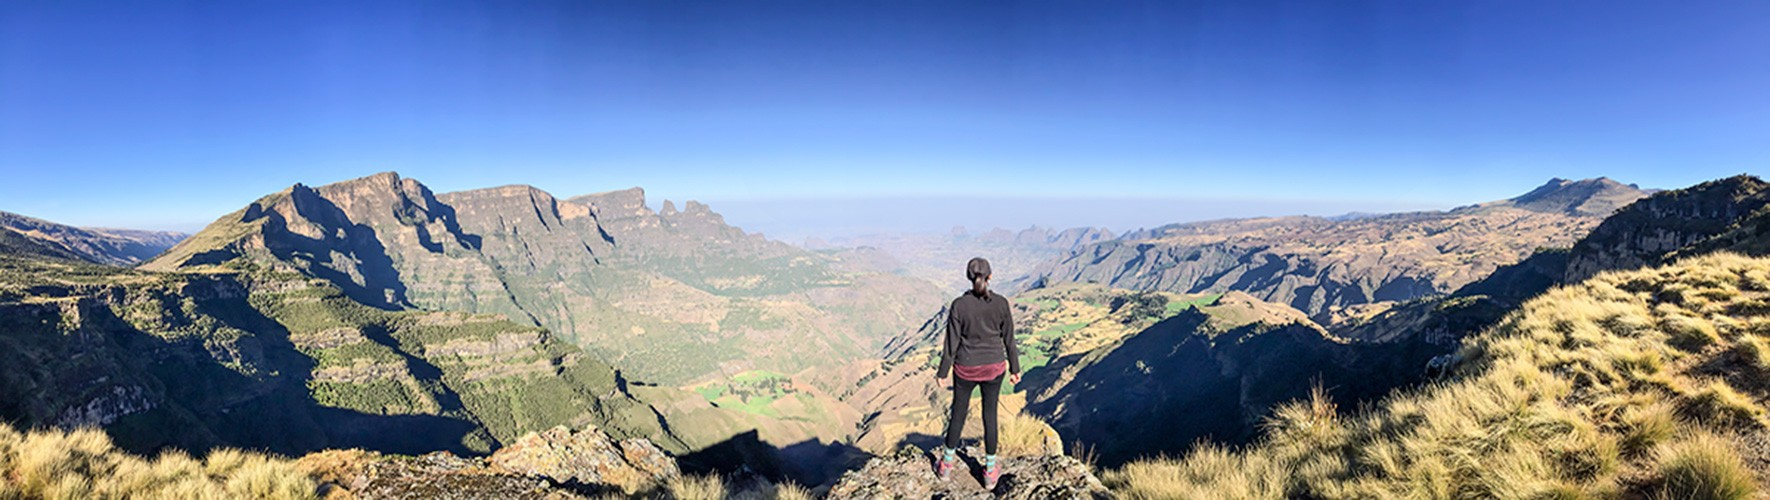 Imet Gogo offers one of the best viewpoints in Simien Mountains National Park